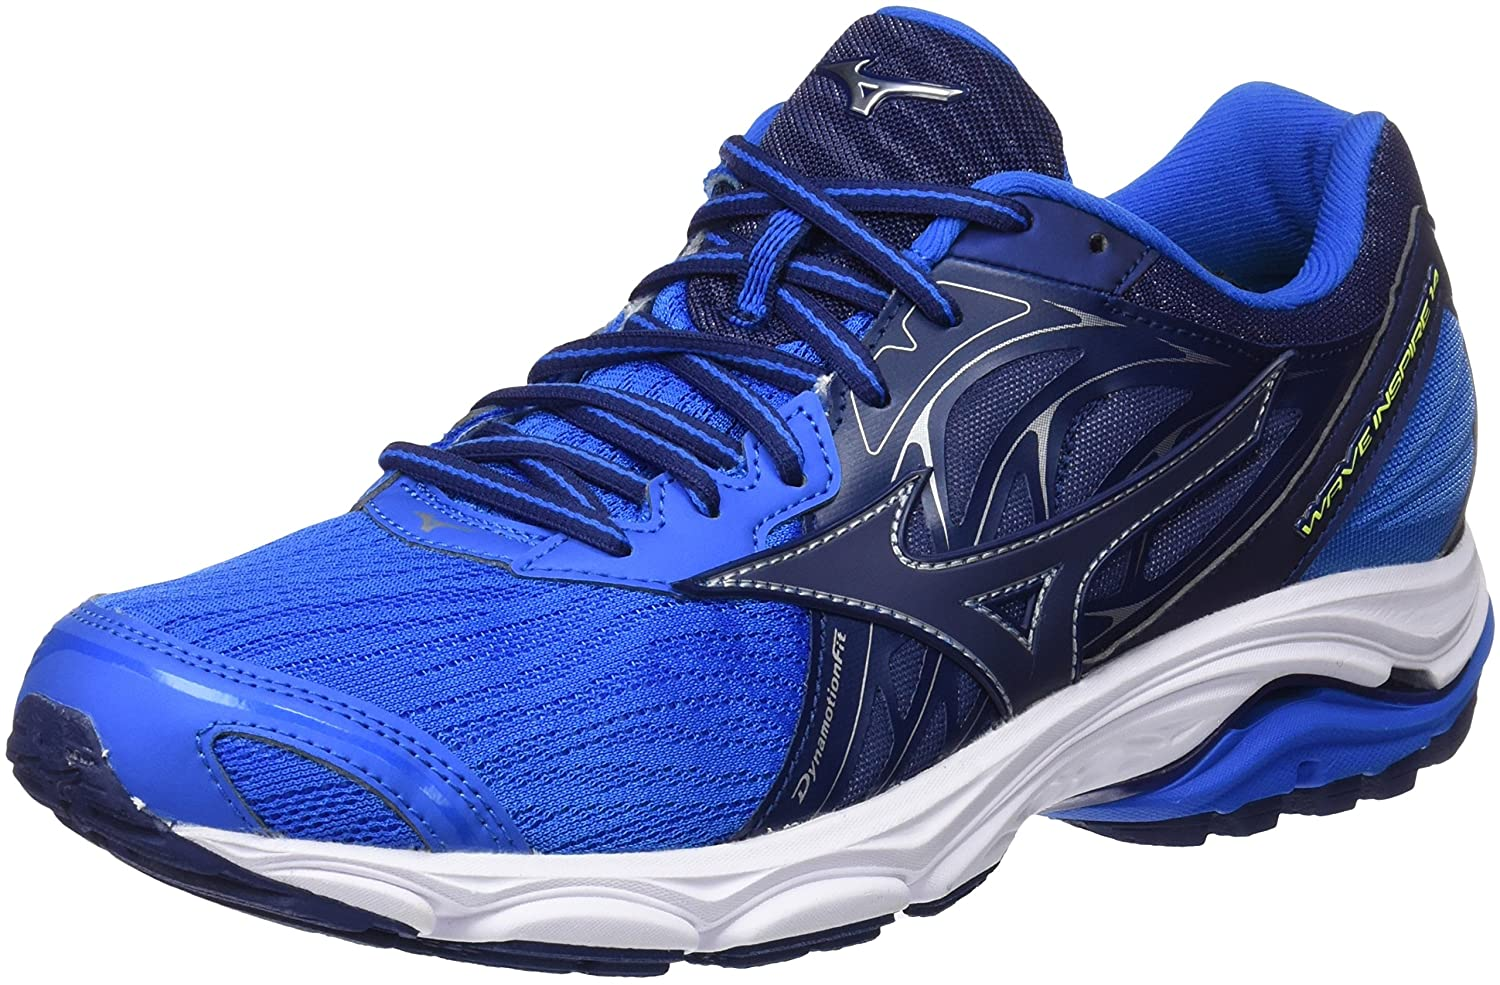 Mizuno Wave Inspire 14, Zapatillas de Running para Hombre 46 EU|Multicolor (Directoireblue/Bluedepths/Safetyyellow 17)